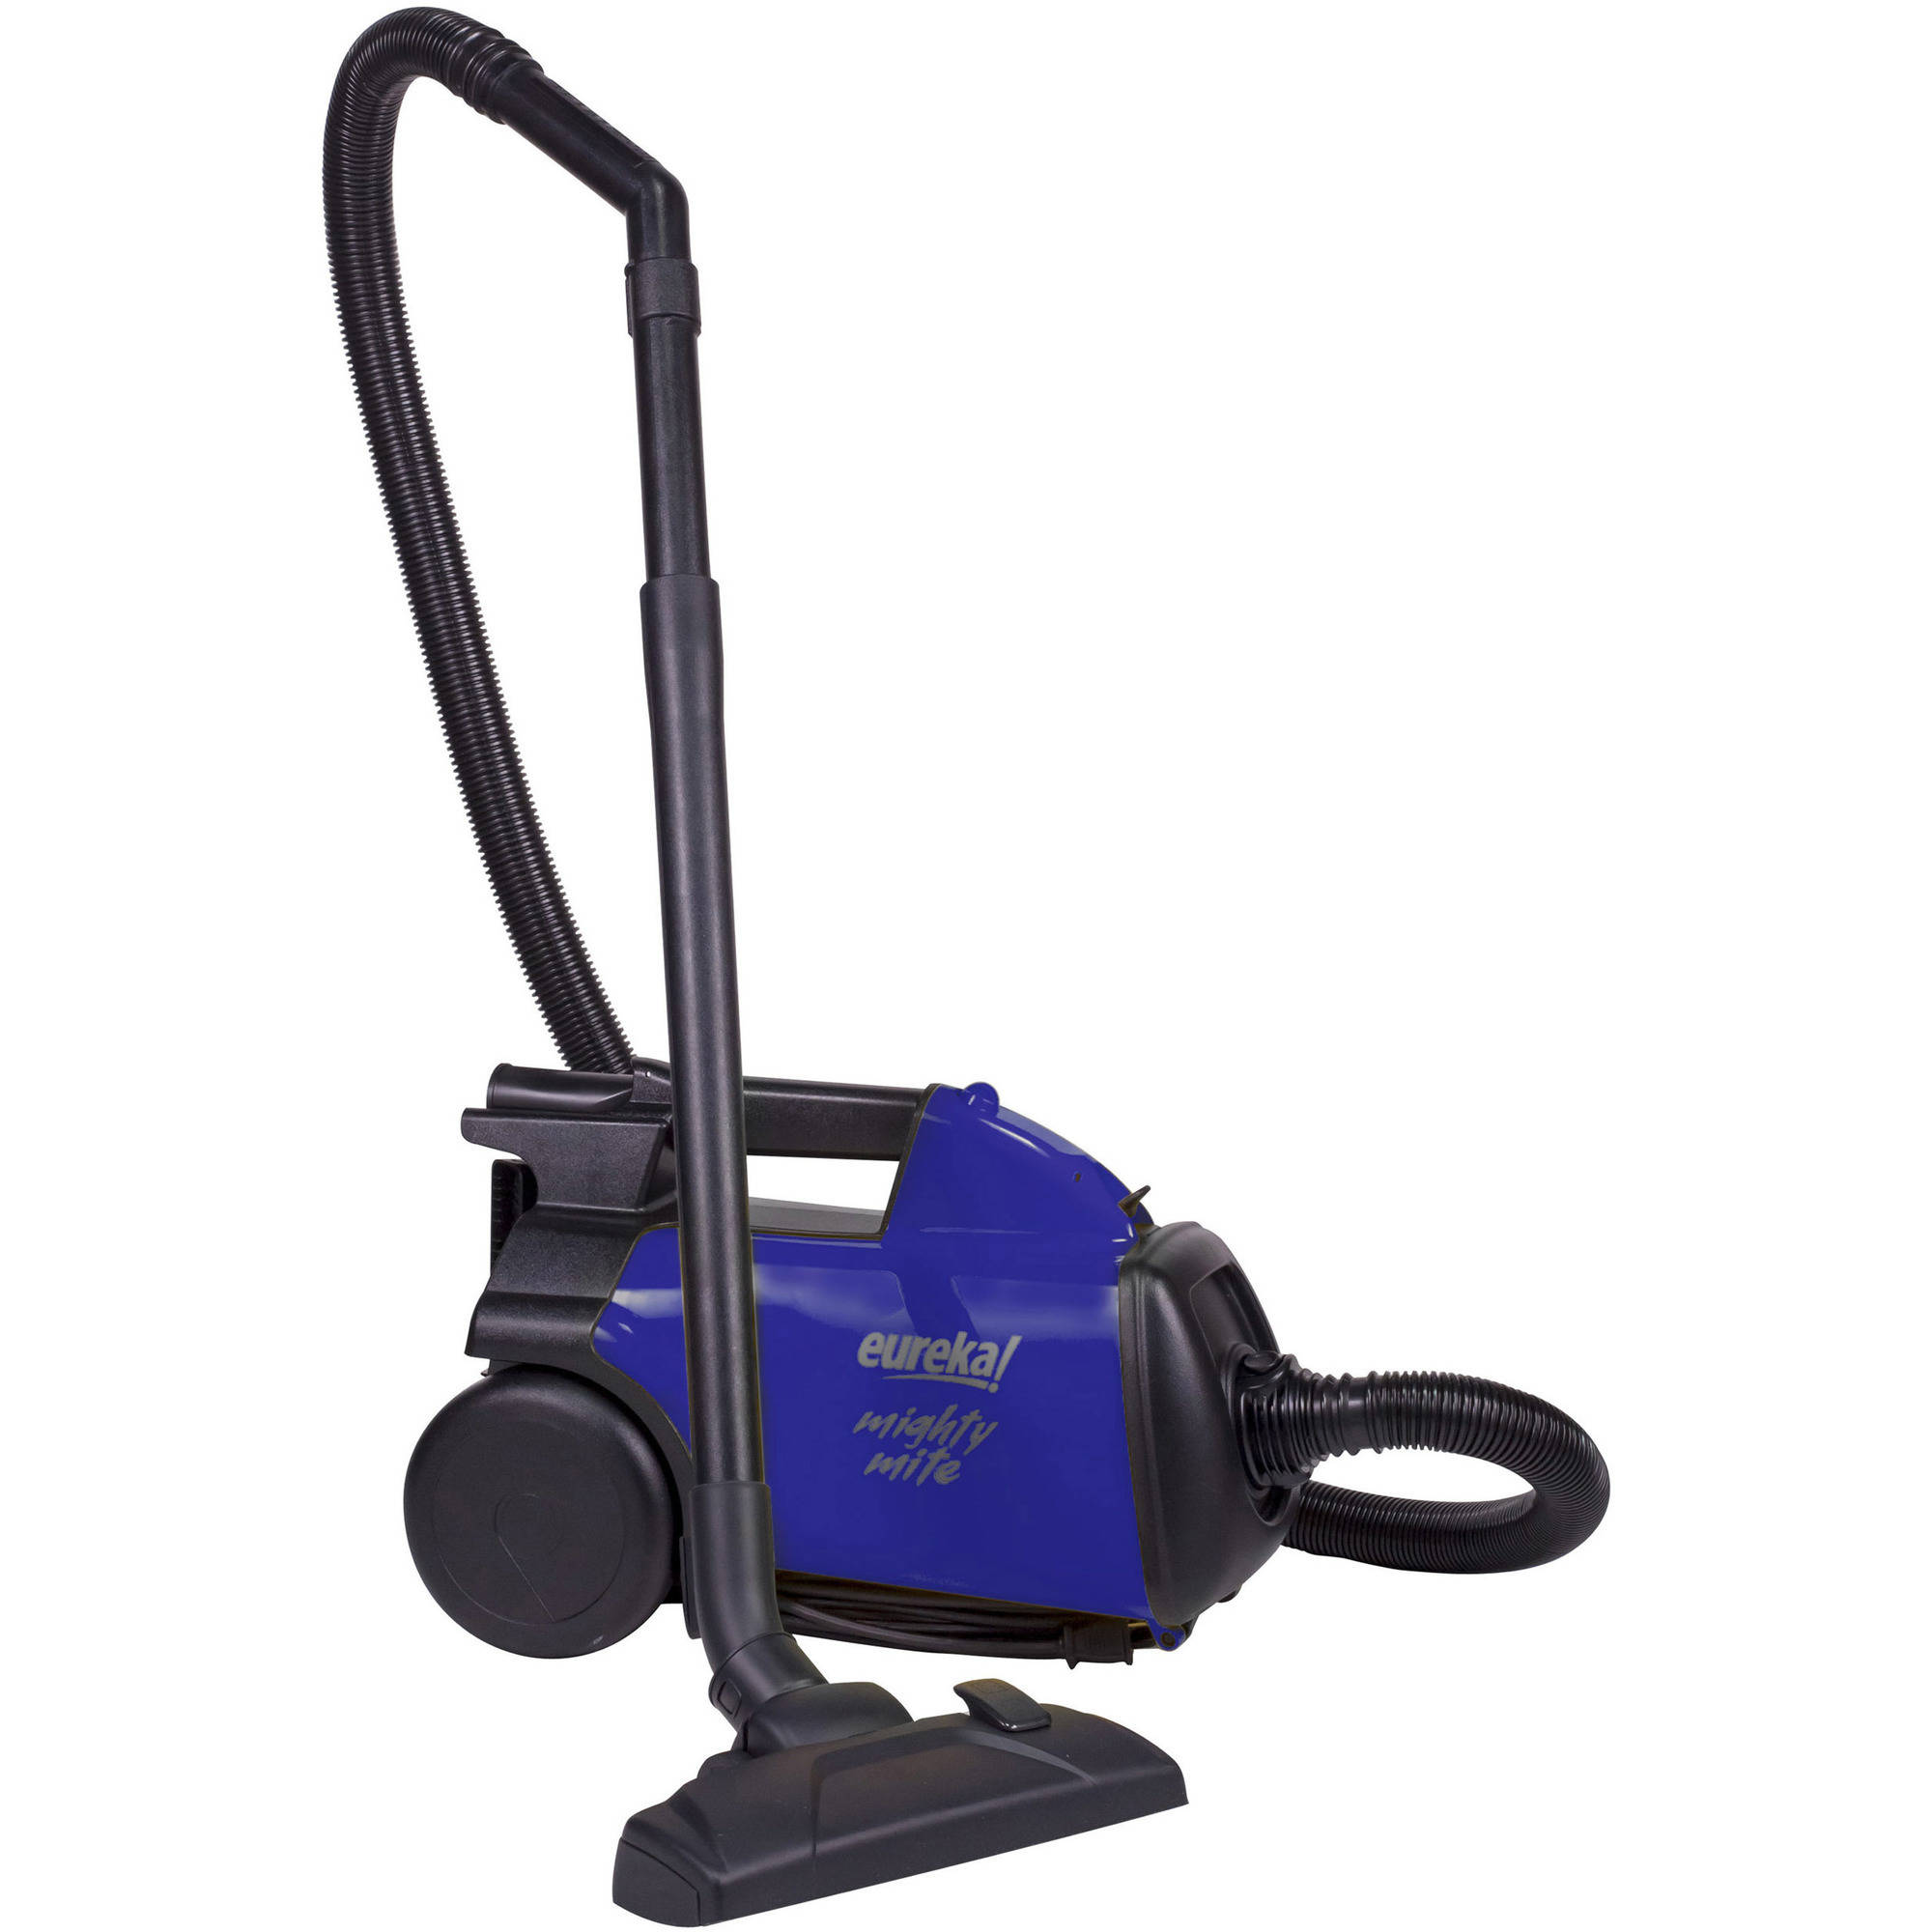 Eureka Mighty Mite Bagged Canister Vacuum, 3670H